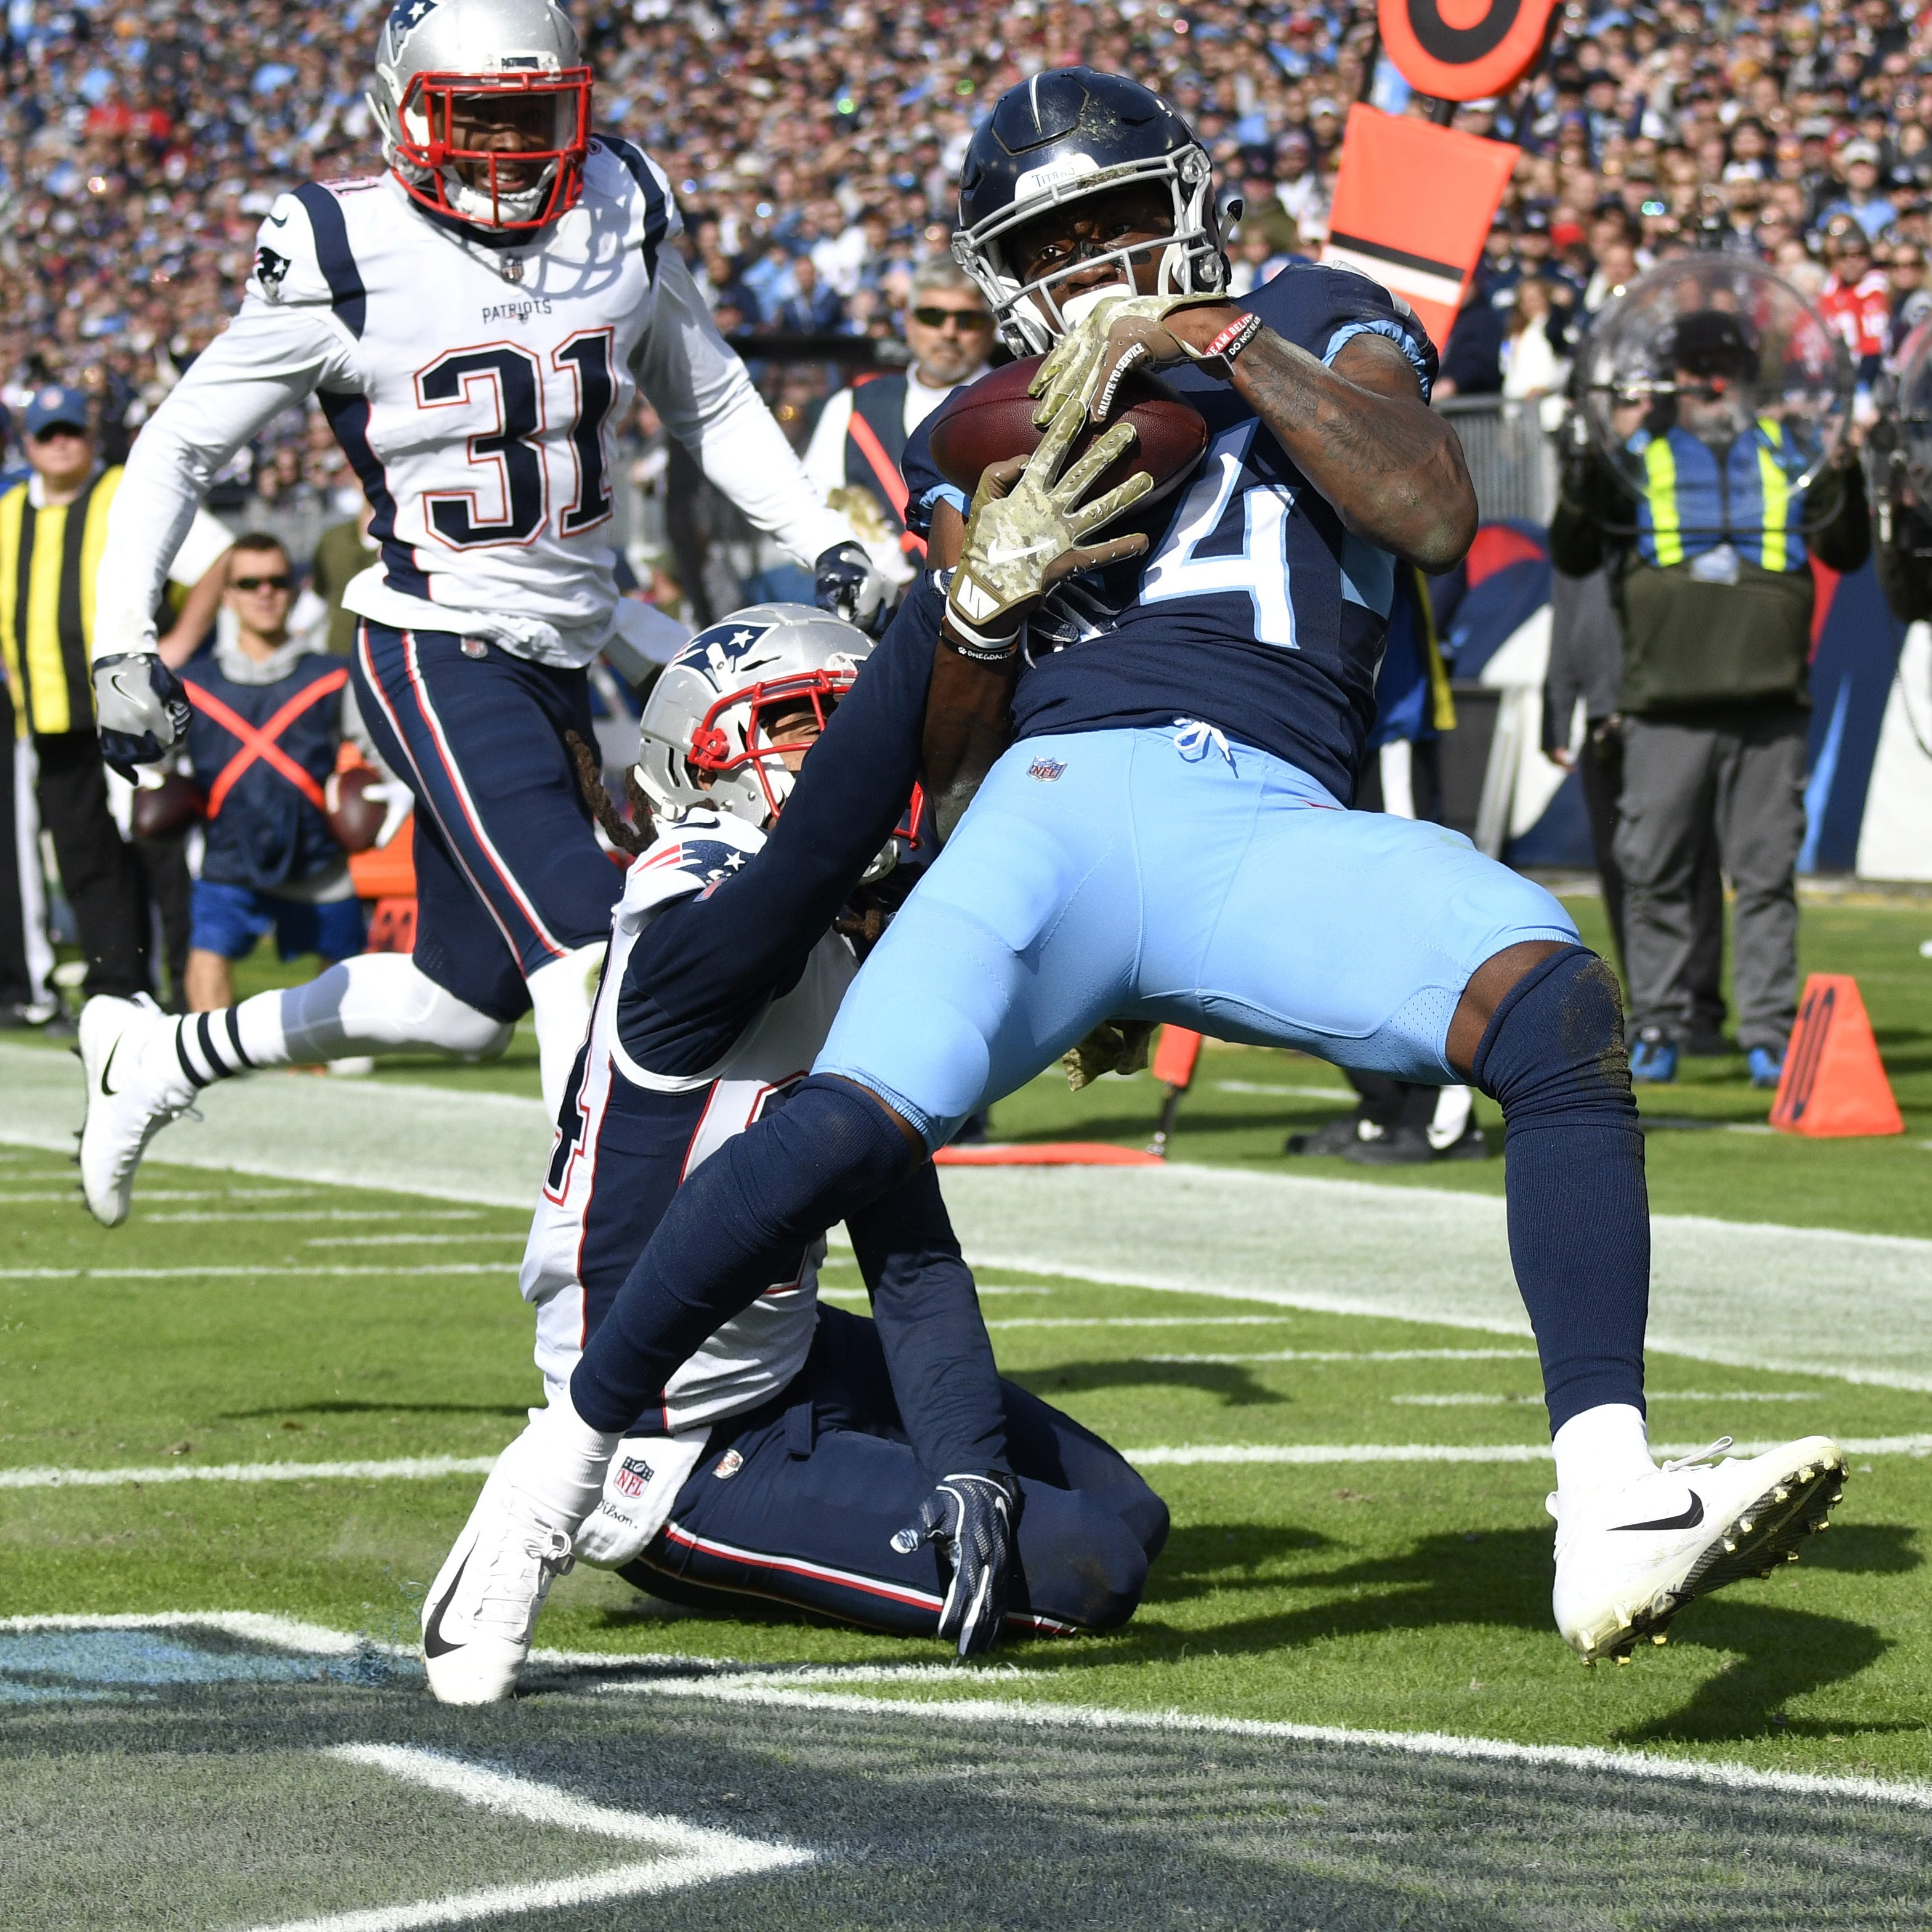 NFL power rankings: Titans make big jump after win over Patriots